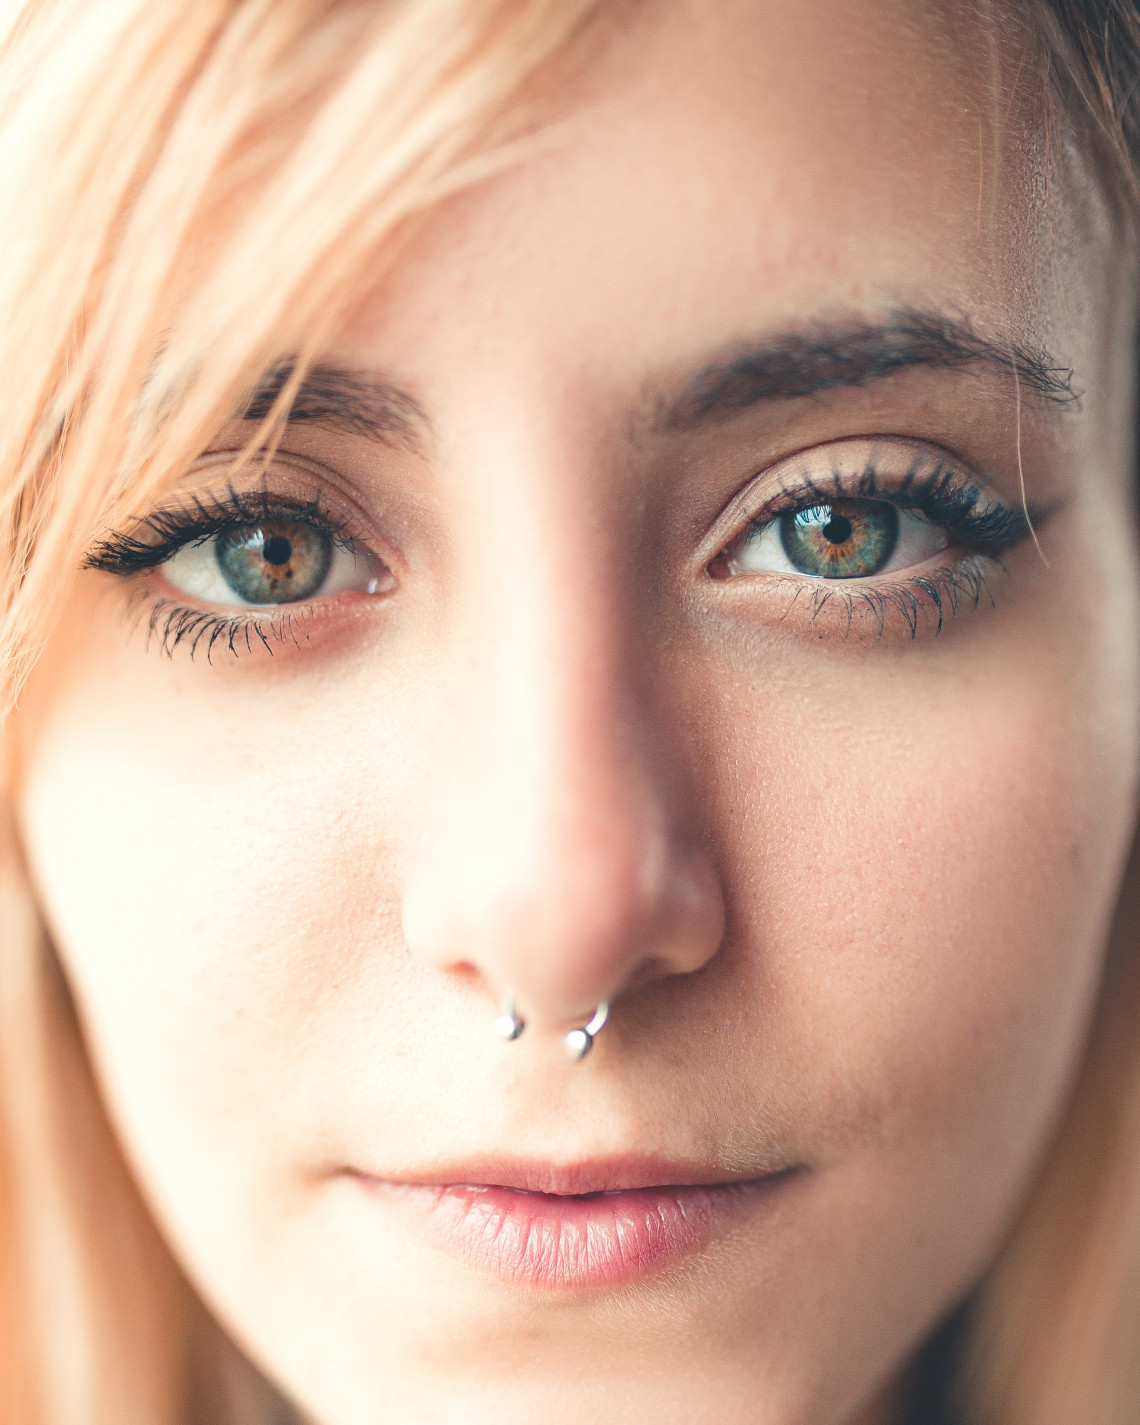 The Ultimate Guide to Nose Ring Piercings